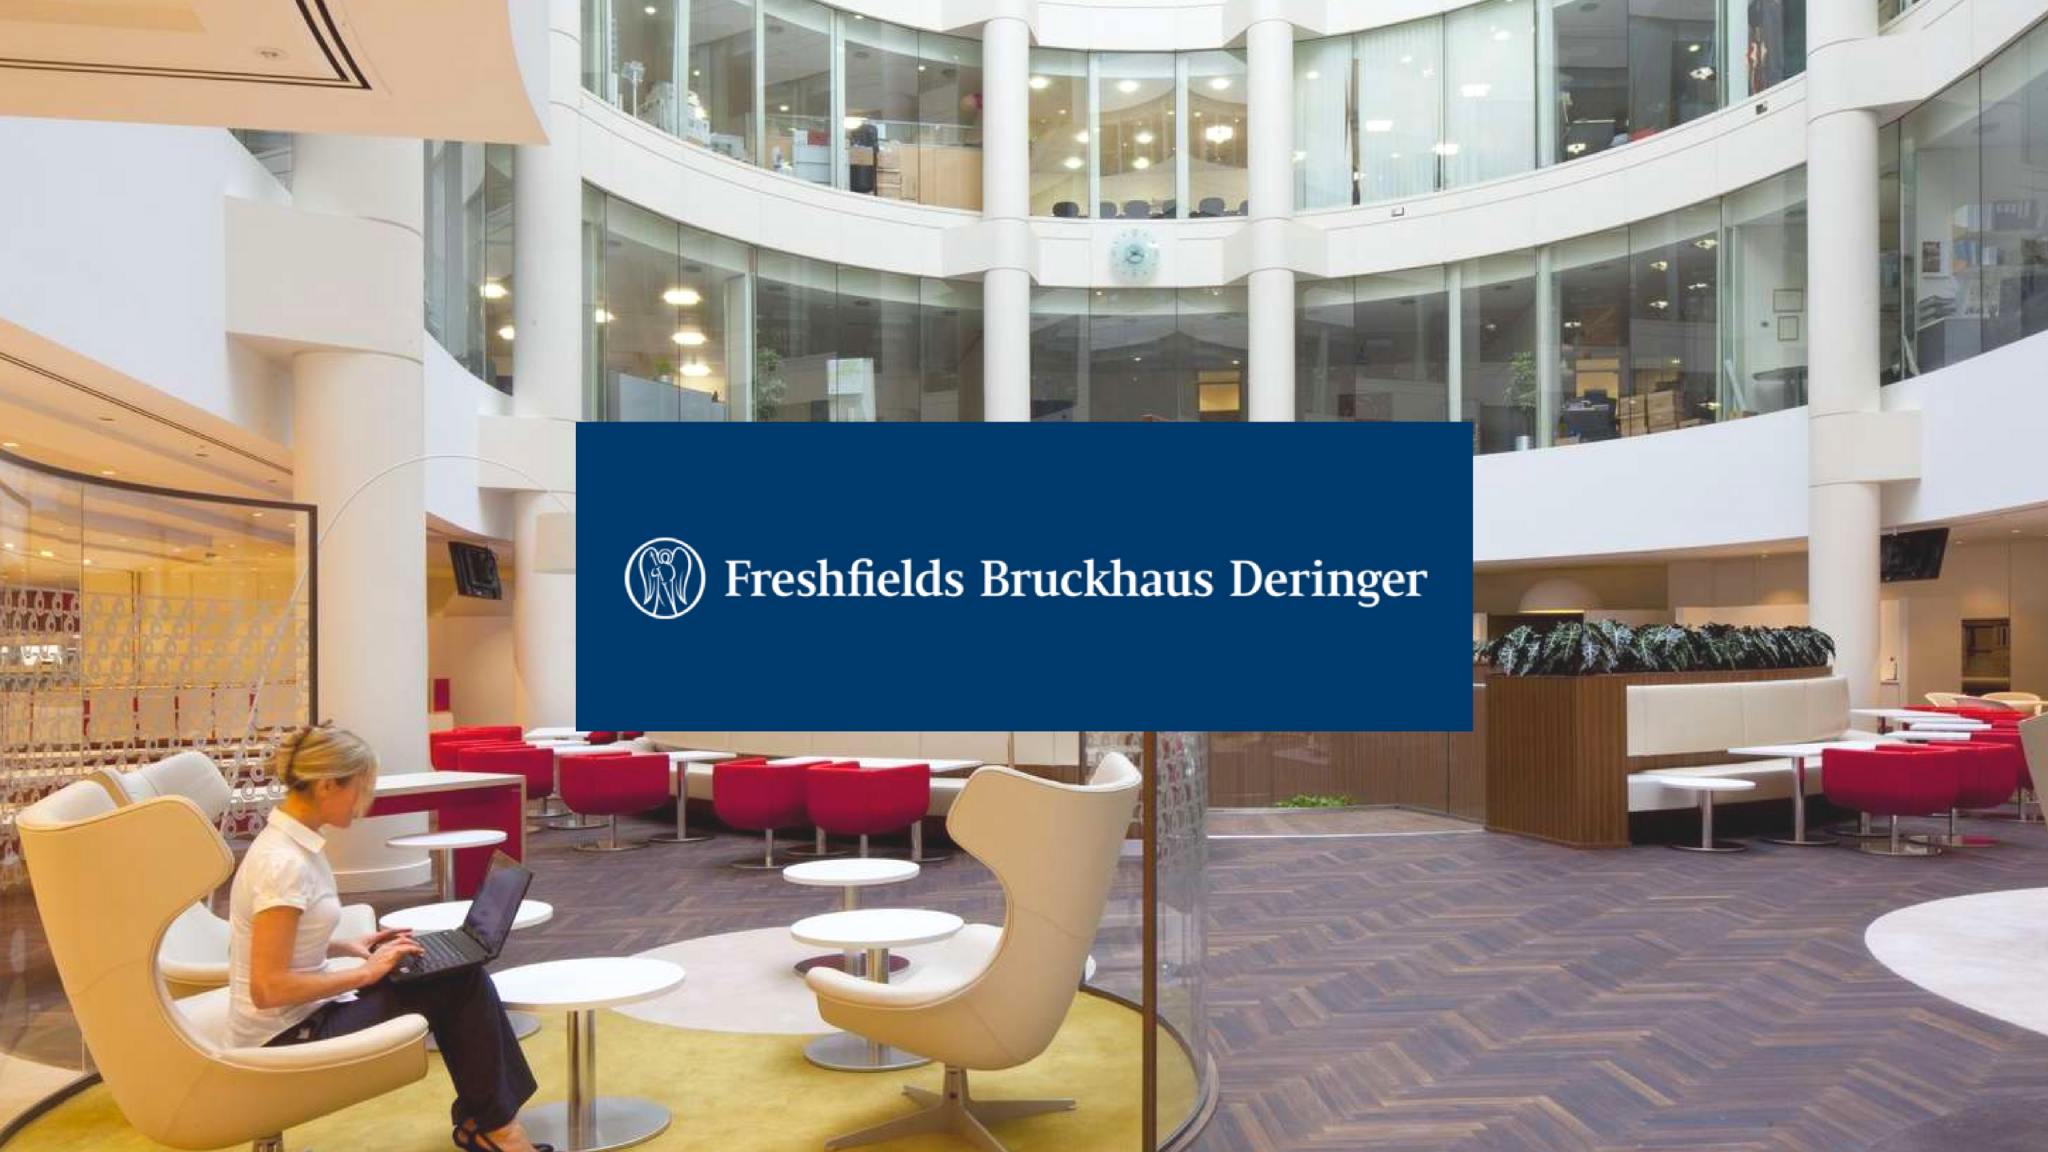 Freshfields Bruckhaus Deringer Best Law Firms in the World UpSlide Top 50